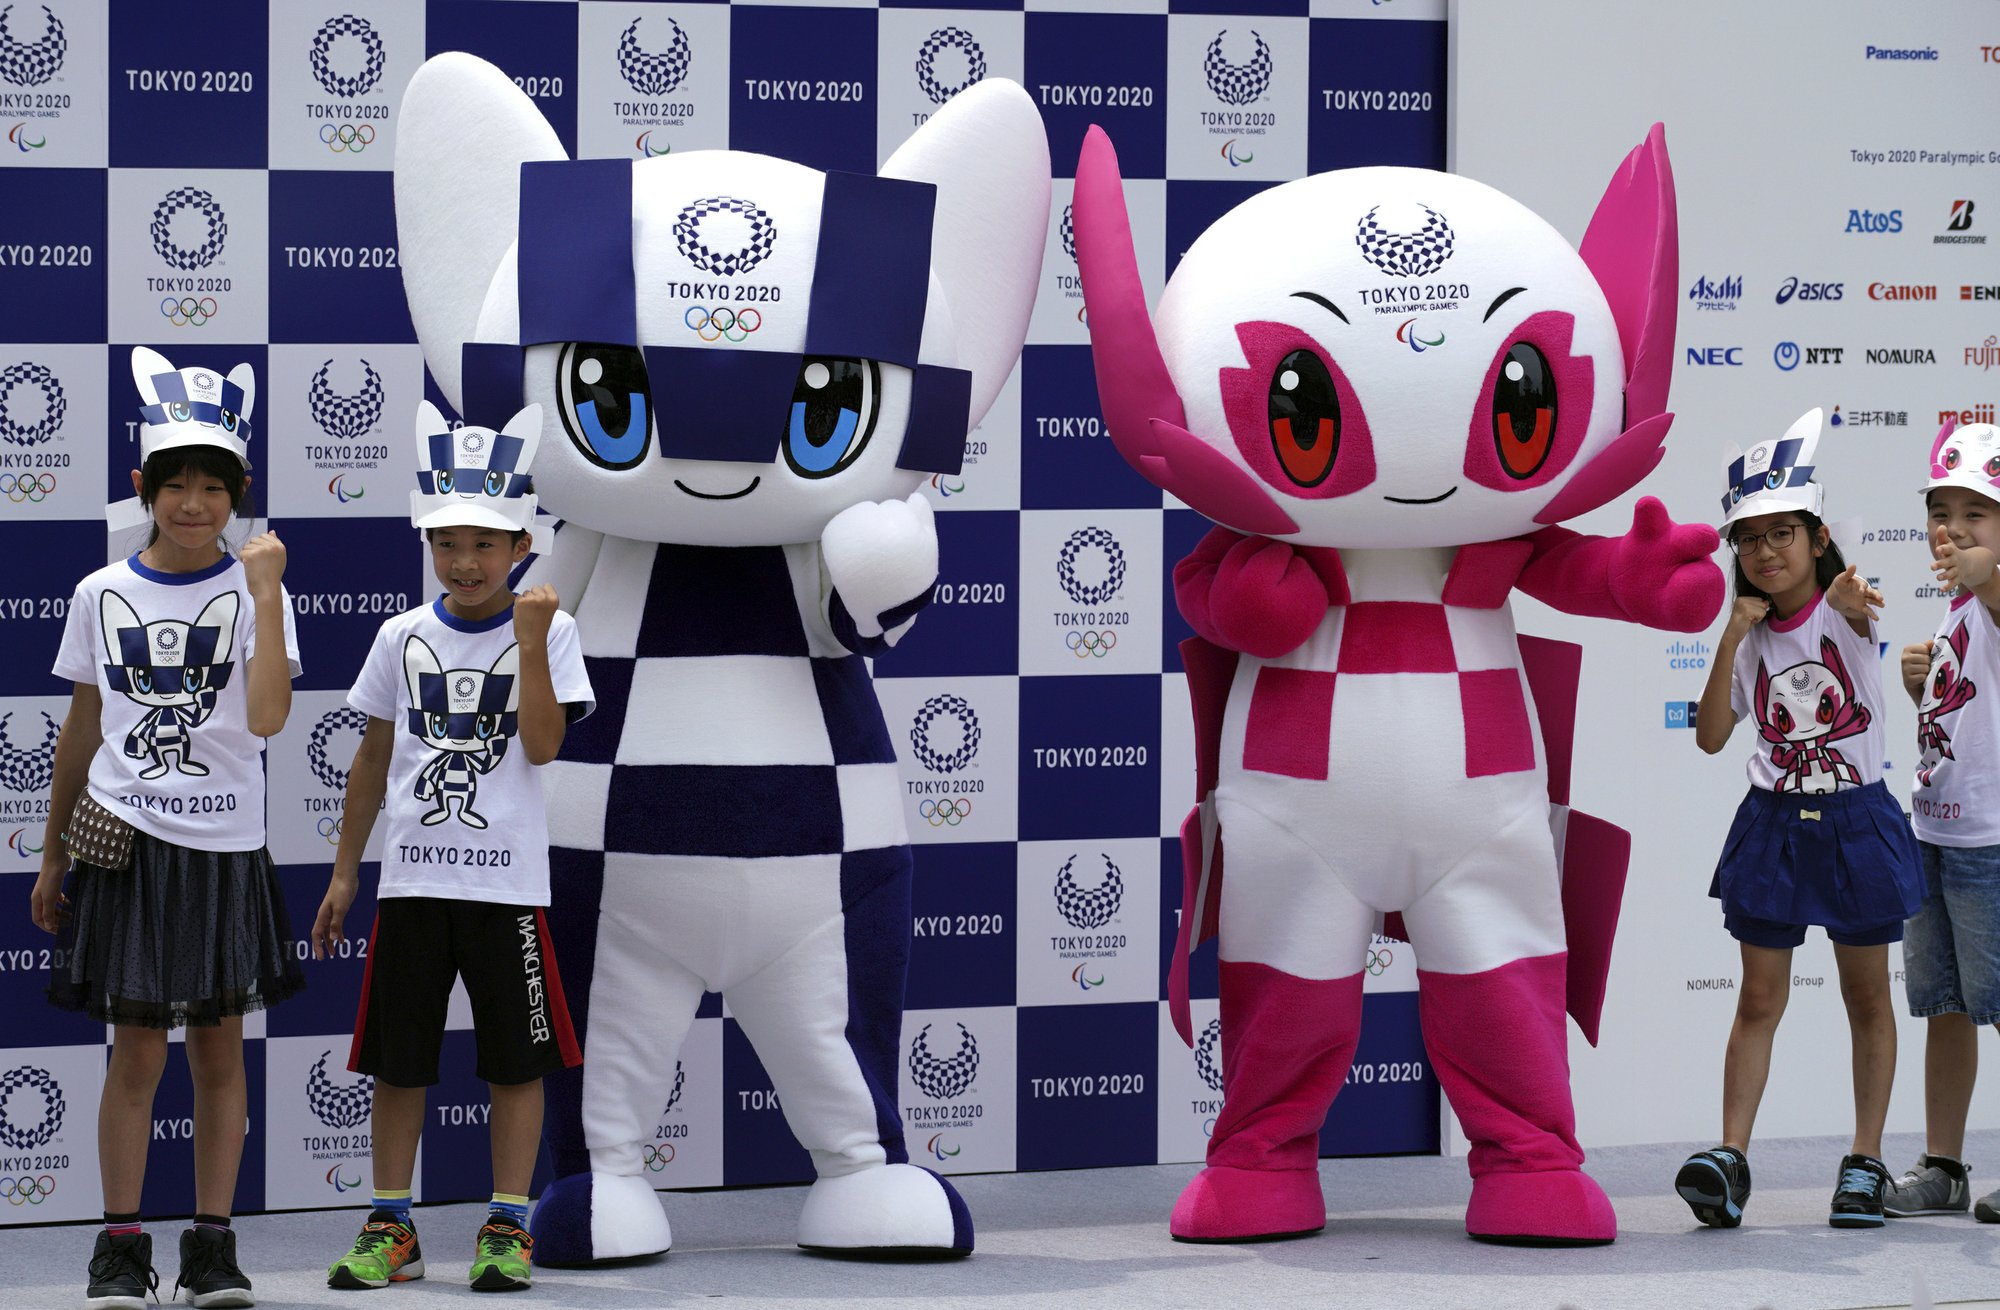 Japan to hold nationwide expo to attract Olympics visitors